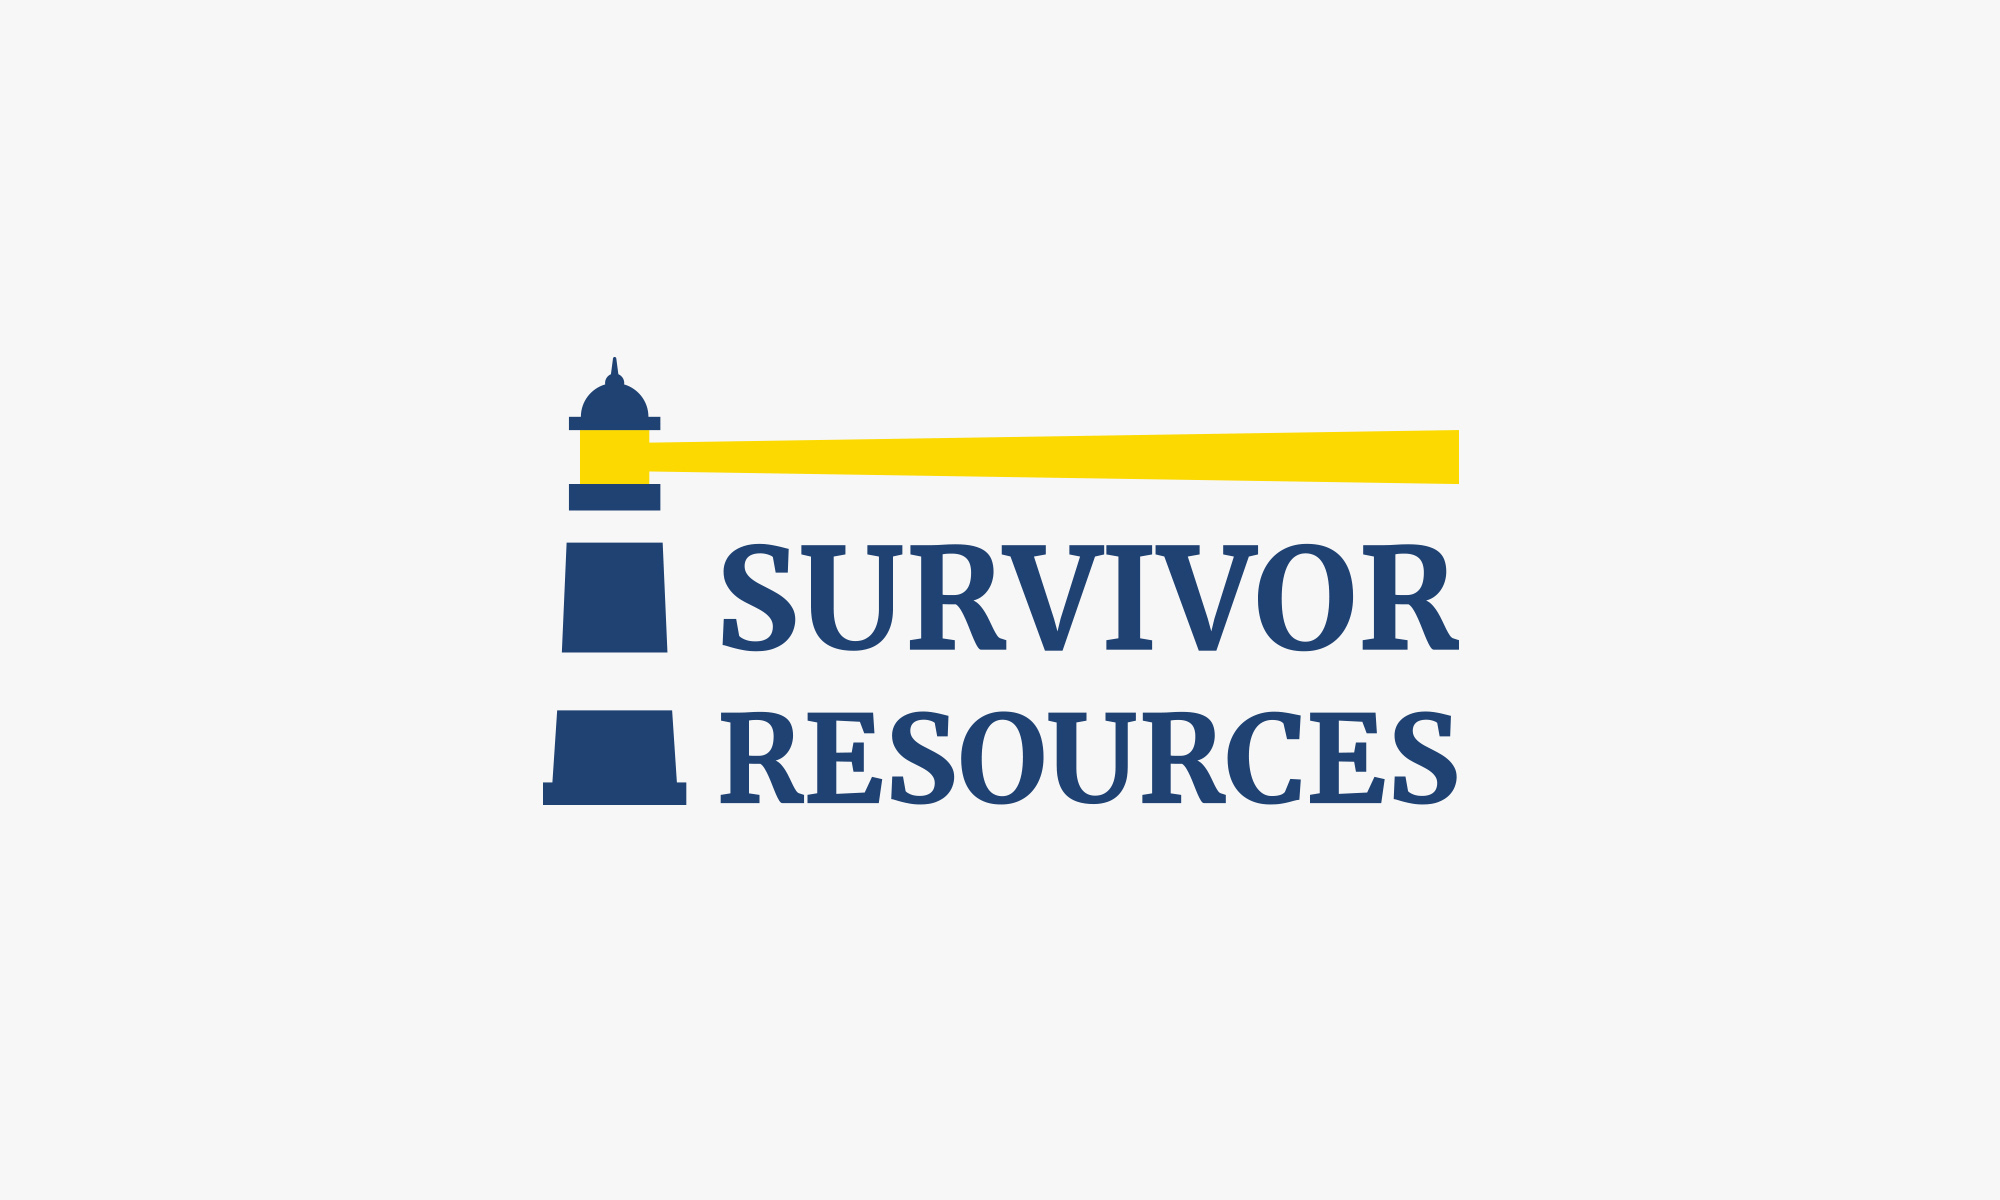 survivor_resources copy.jpg